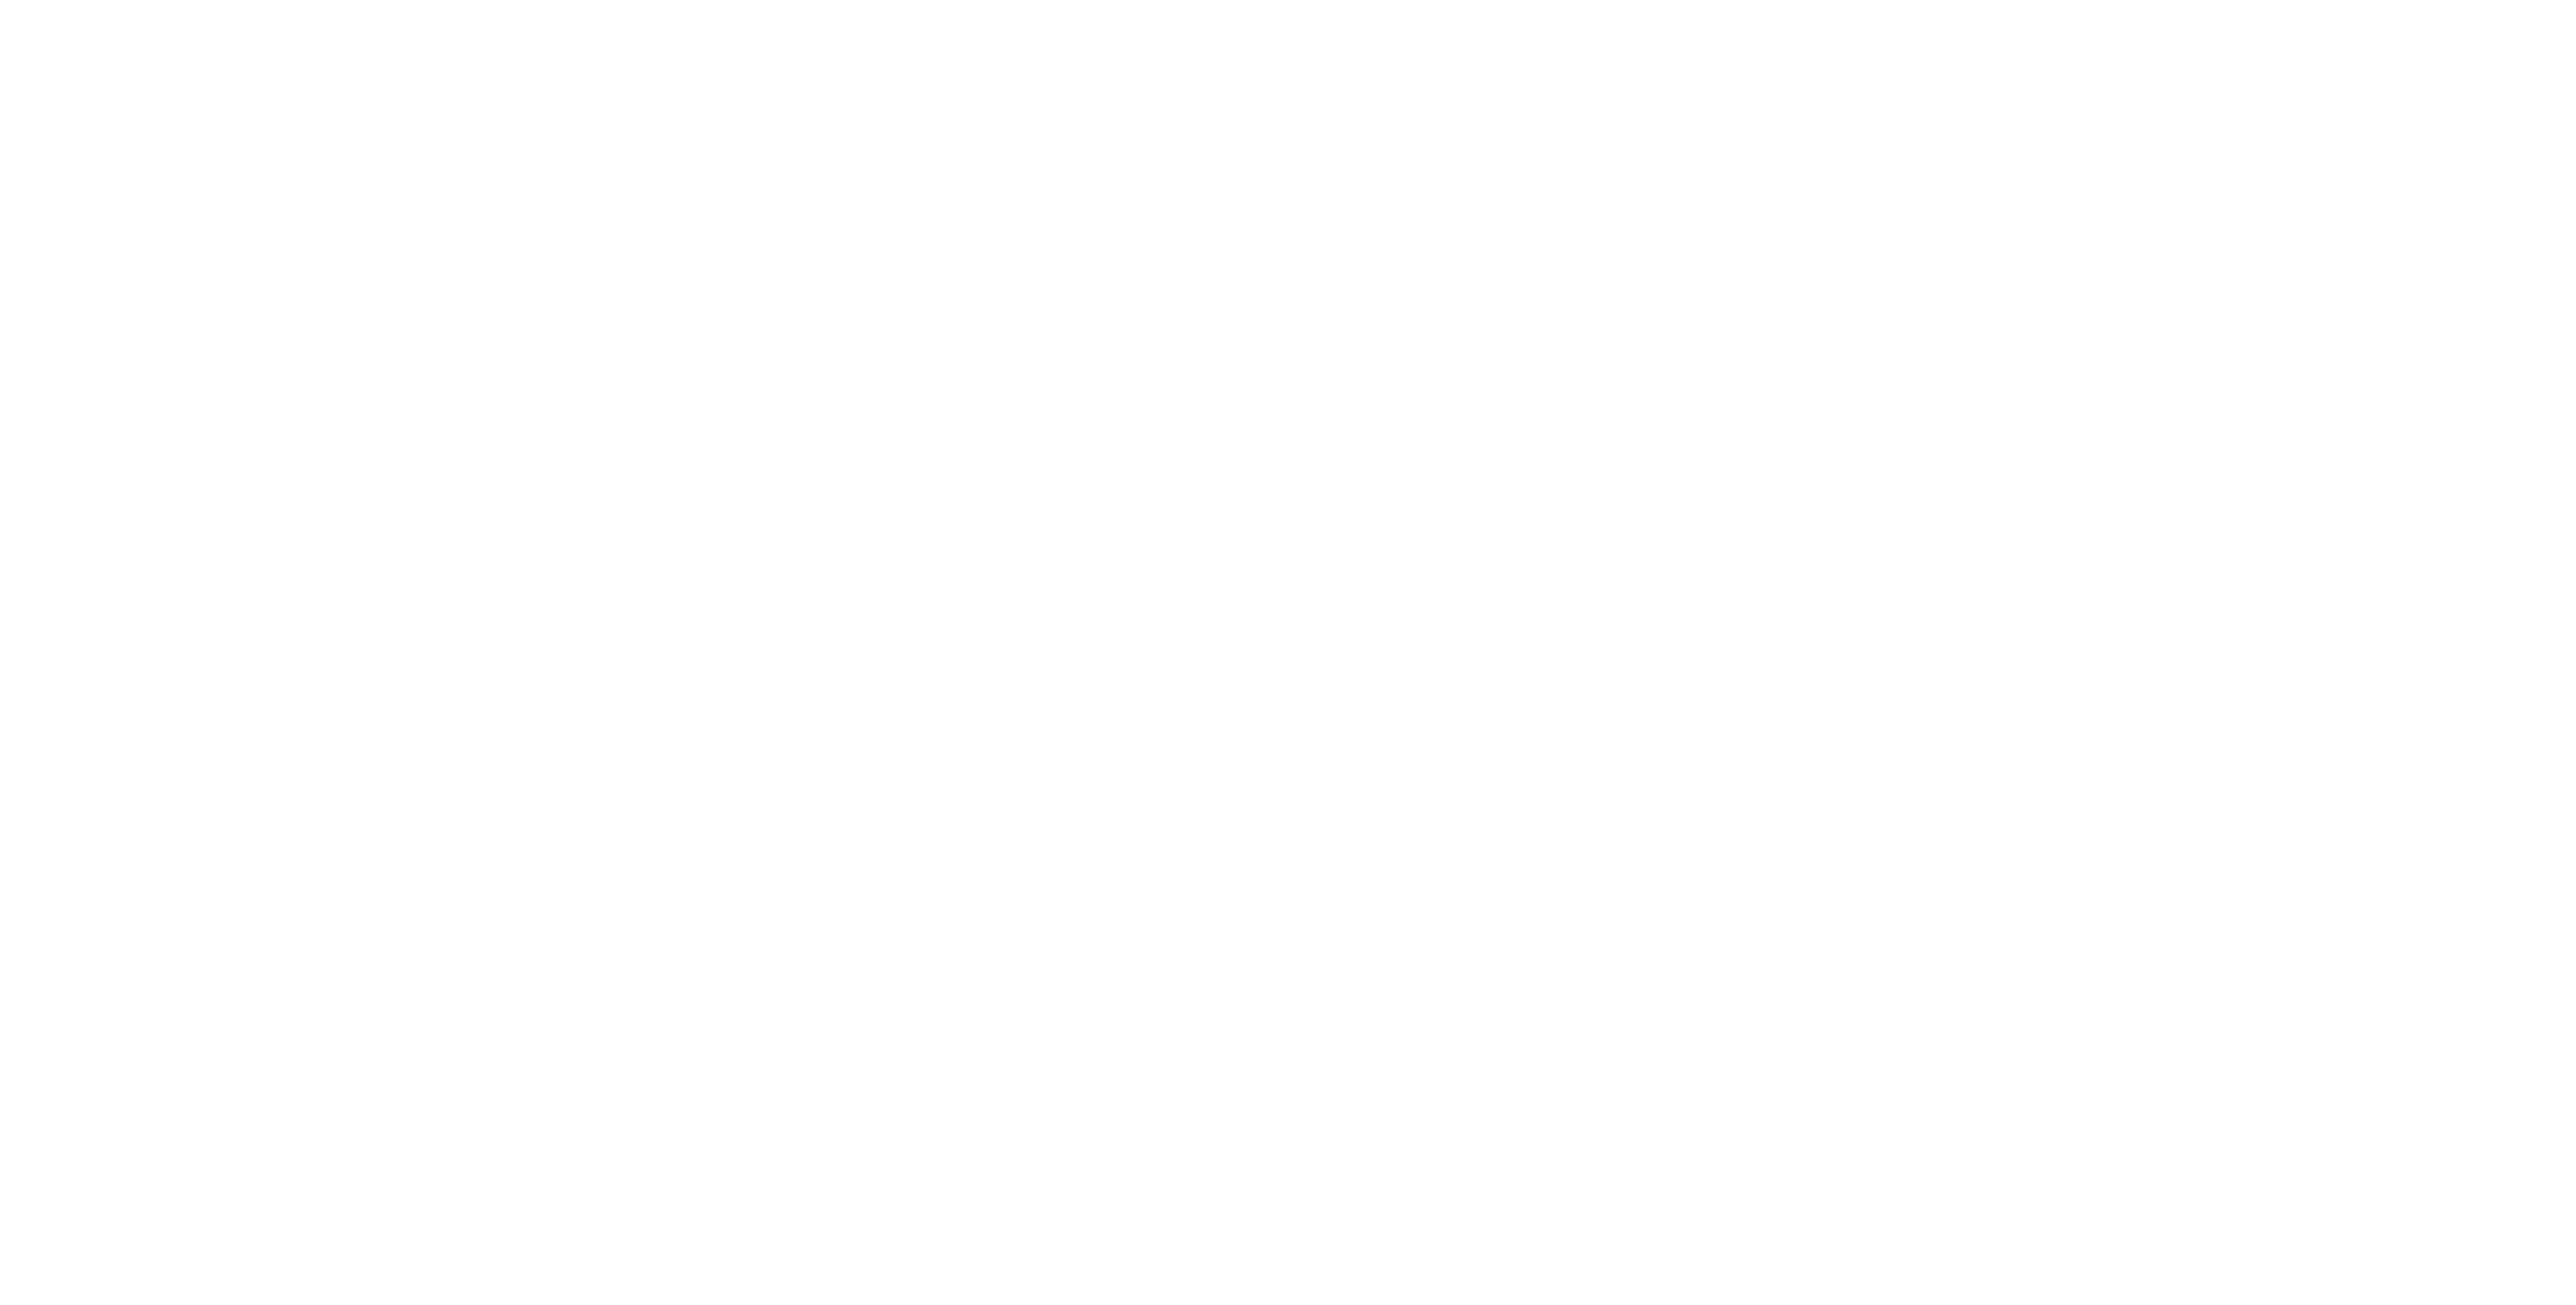 Inspections Luc Forest